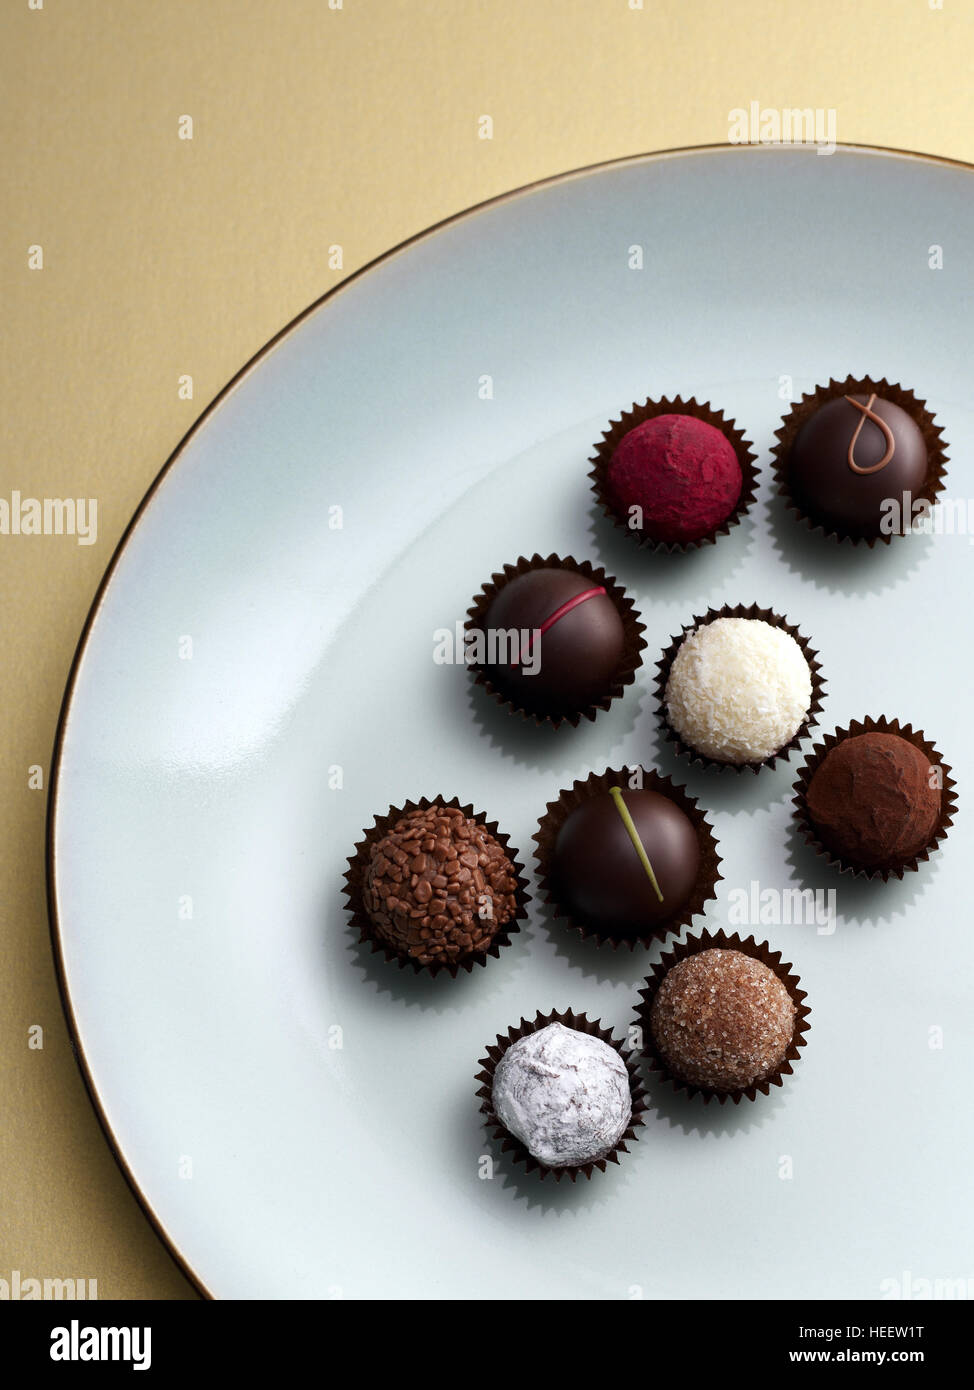 Chocolate pralines and truffles on blue plate and gold background - Stock Image